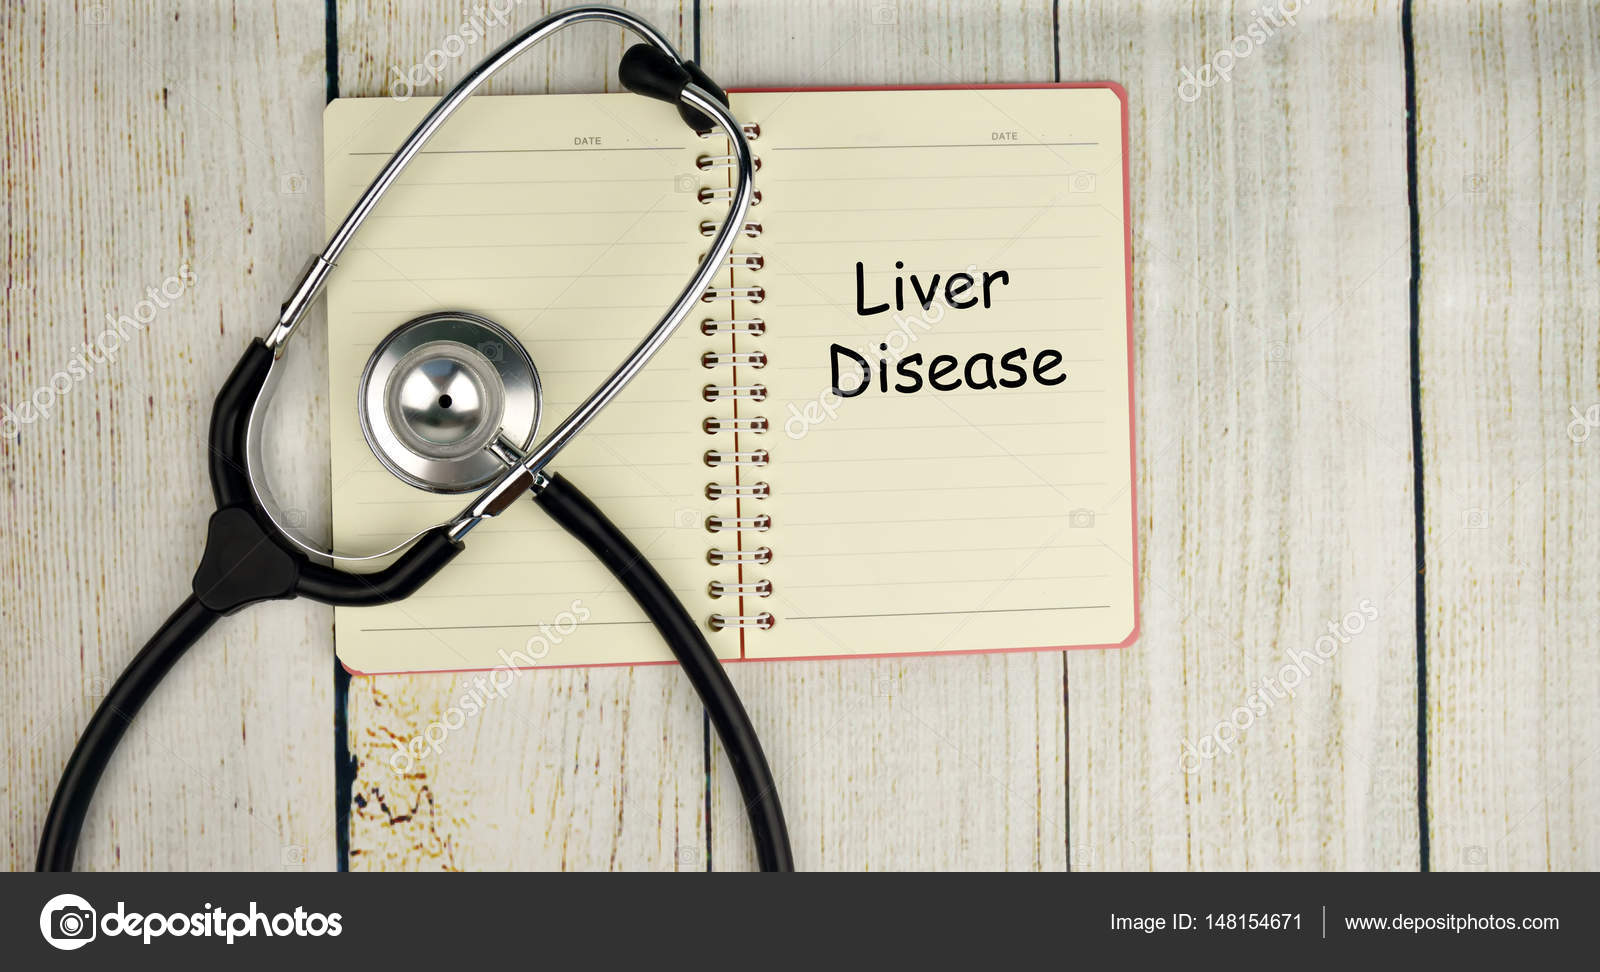 Health And Medical Concept Liver Disease Stock Photo Huzaime Electrical Wiring Terminology Diseases Medications Treatment Methods By